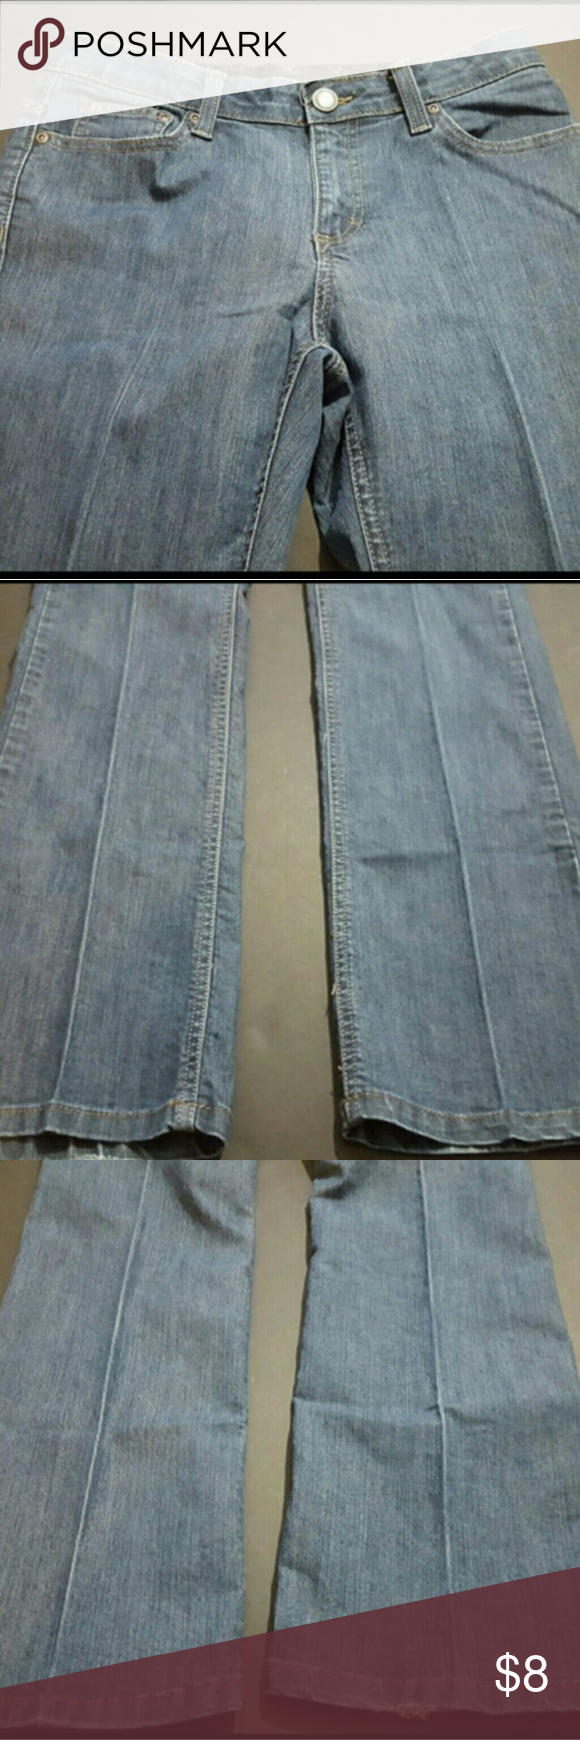 MERONA WOMEN'S SIZE 6 (30x30)COMFORT WAIST JEANS MERONA WOMEN'S SIZE 6 COMFORT WAIST JEANS  These are a great condition pair of denim jeans from Merona. These are a Women's Size 6. These have a comfort stretch waistband and are a bootcut style. With the jeans laying flat, the waist measures 15 inches and the inseam measures 30.5 inches. These are pre-owned and some light signs of use should be expected.? Merona Jeans Boot Cut